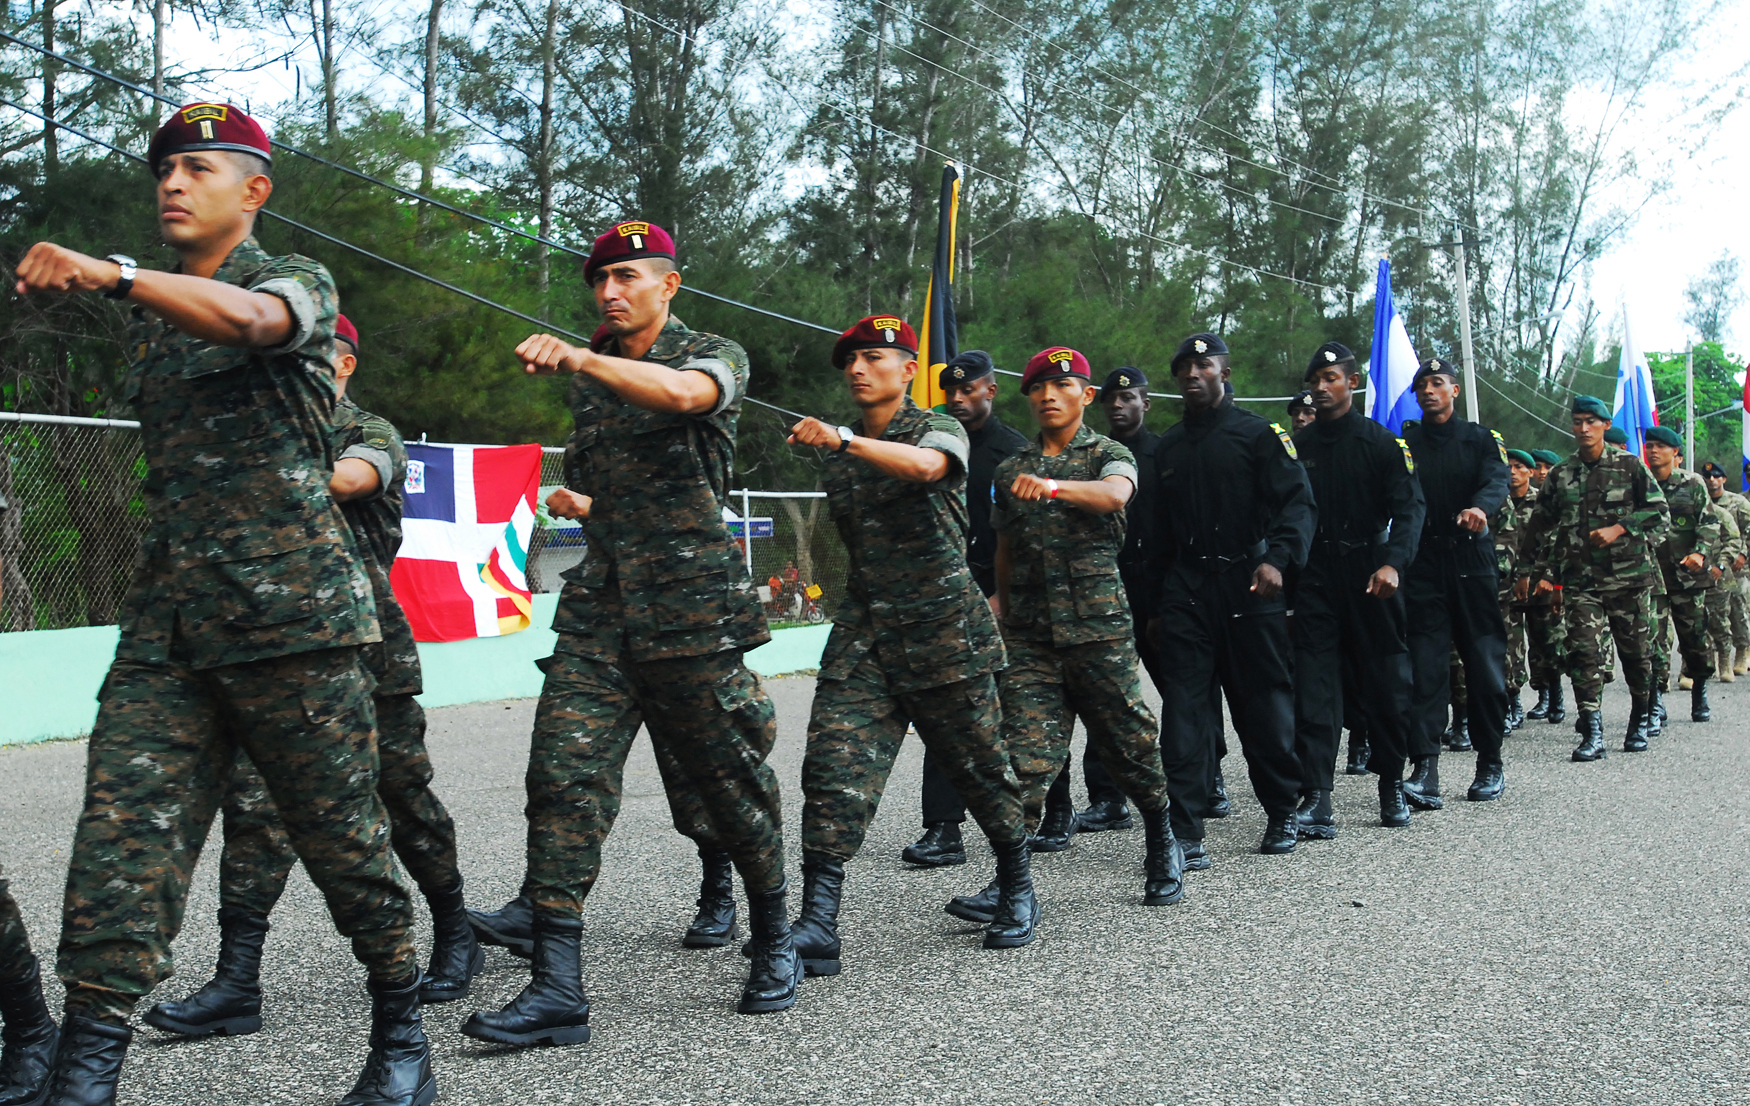 File:Opening Ceremony for Fuerzas Comando 2010 Image 2 of 4.jpg ...